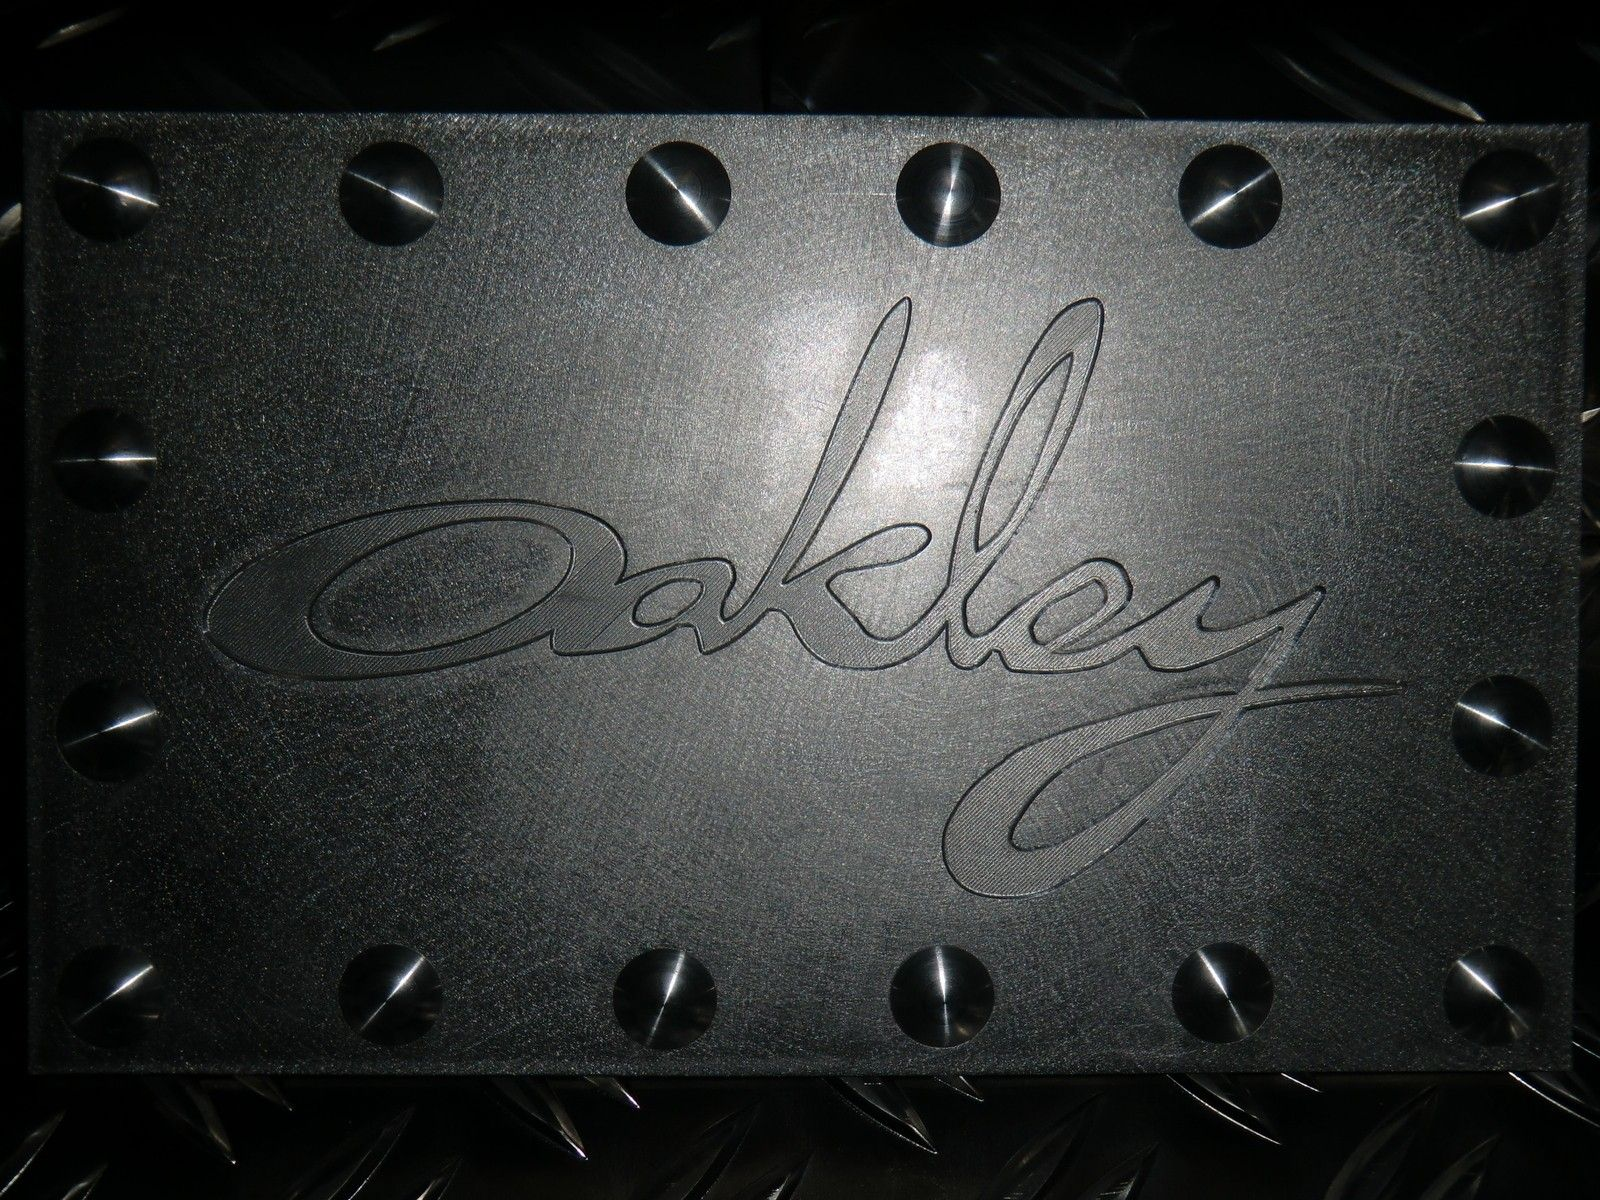 Oakley Plates selfmade on my machine for my towers - CIMG1849.JPG